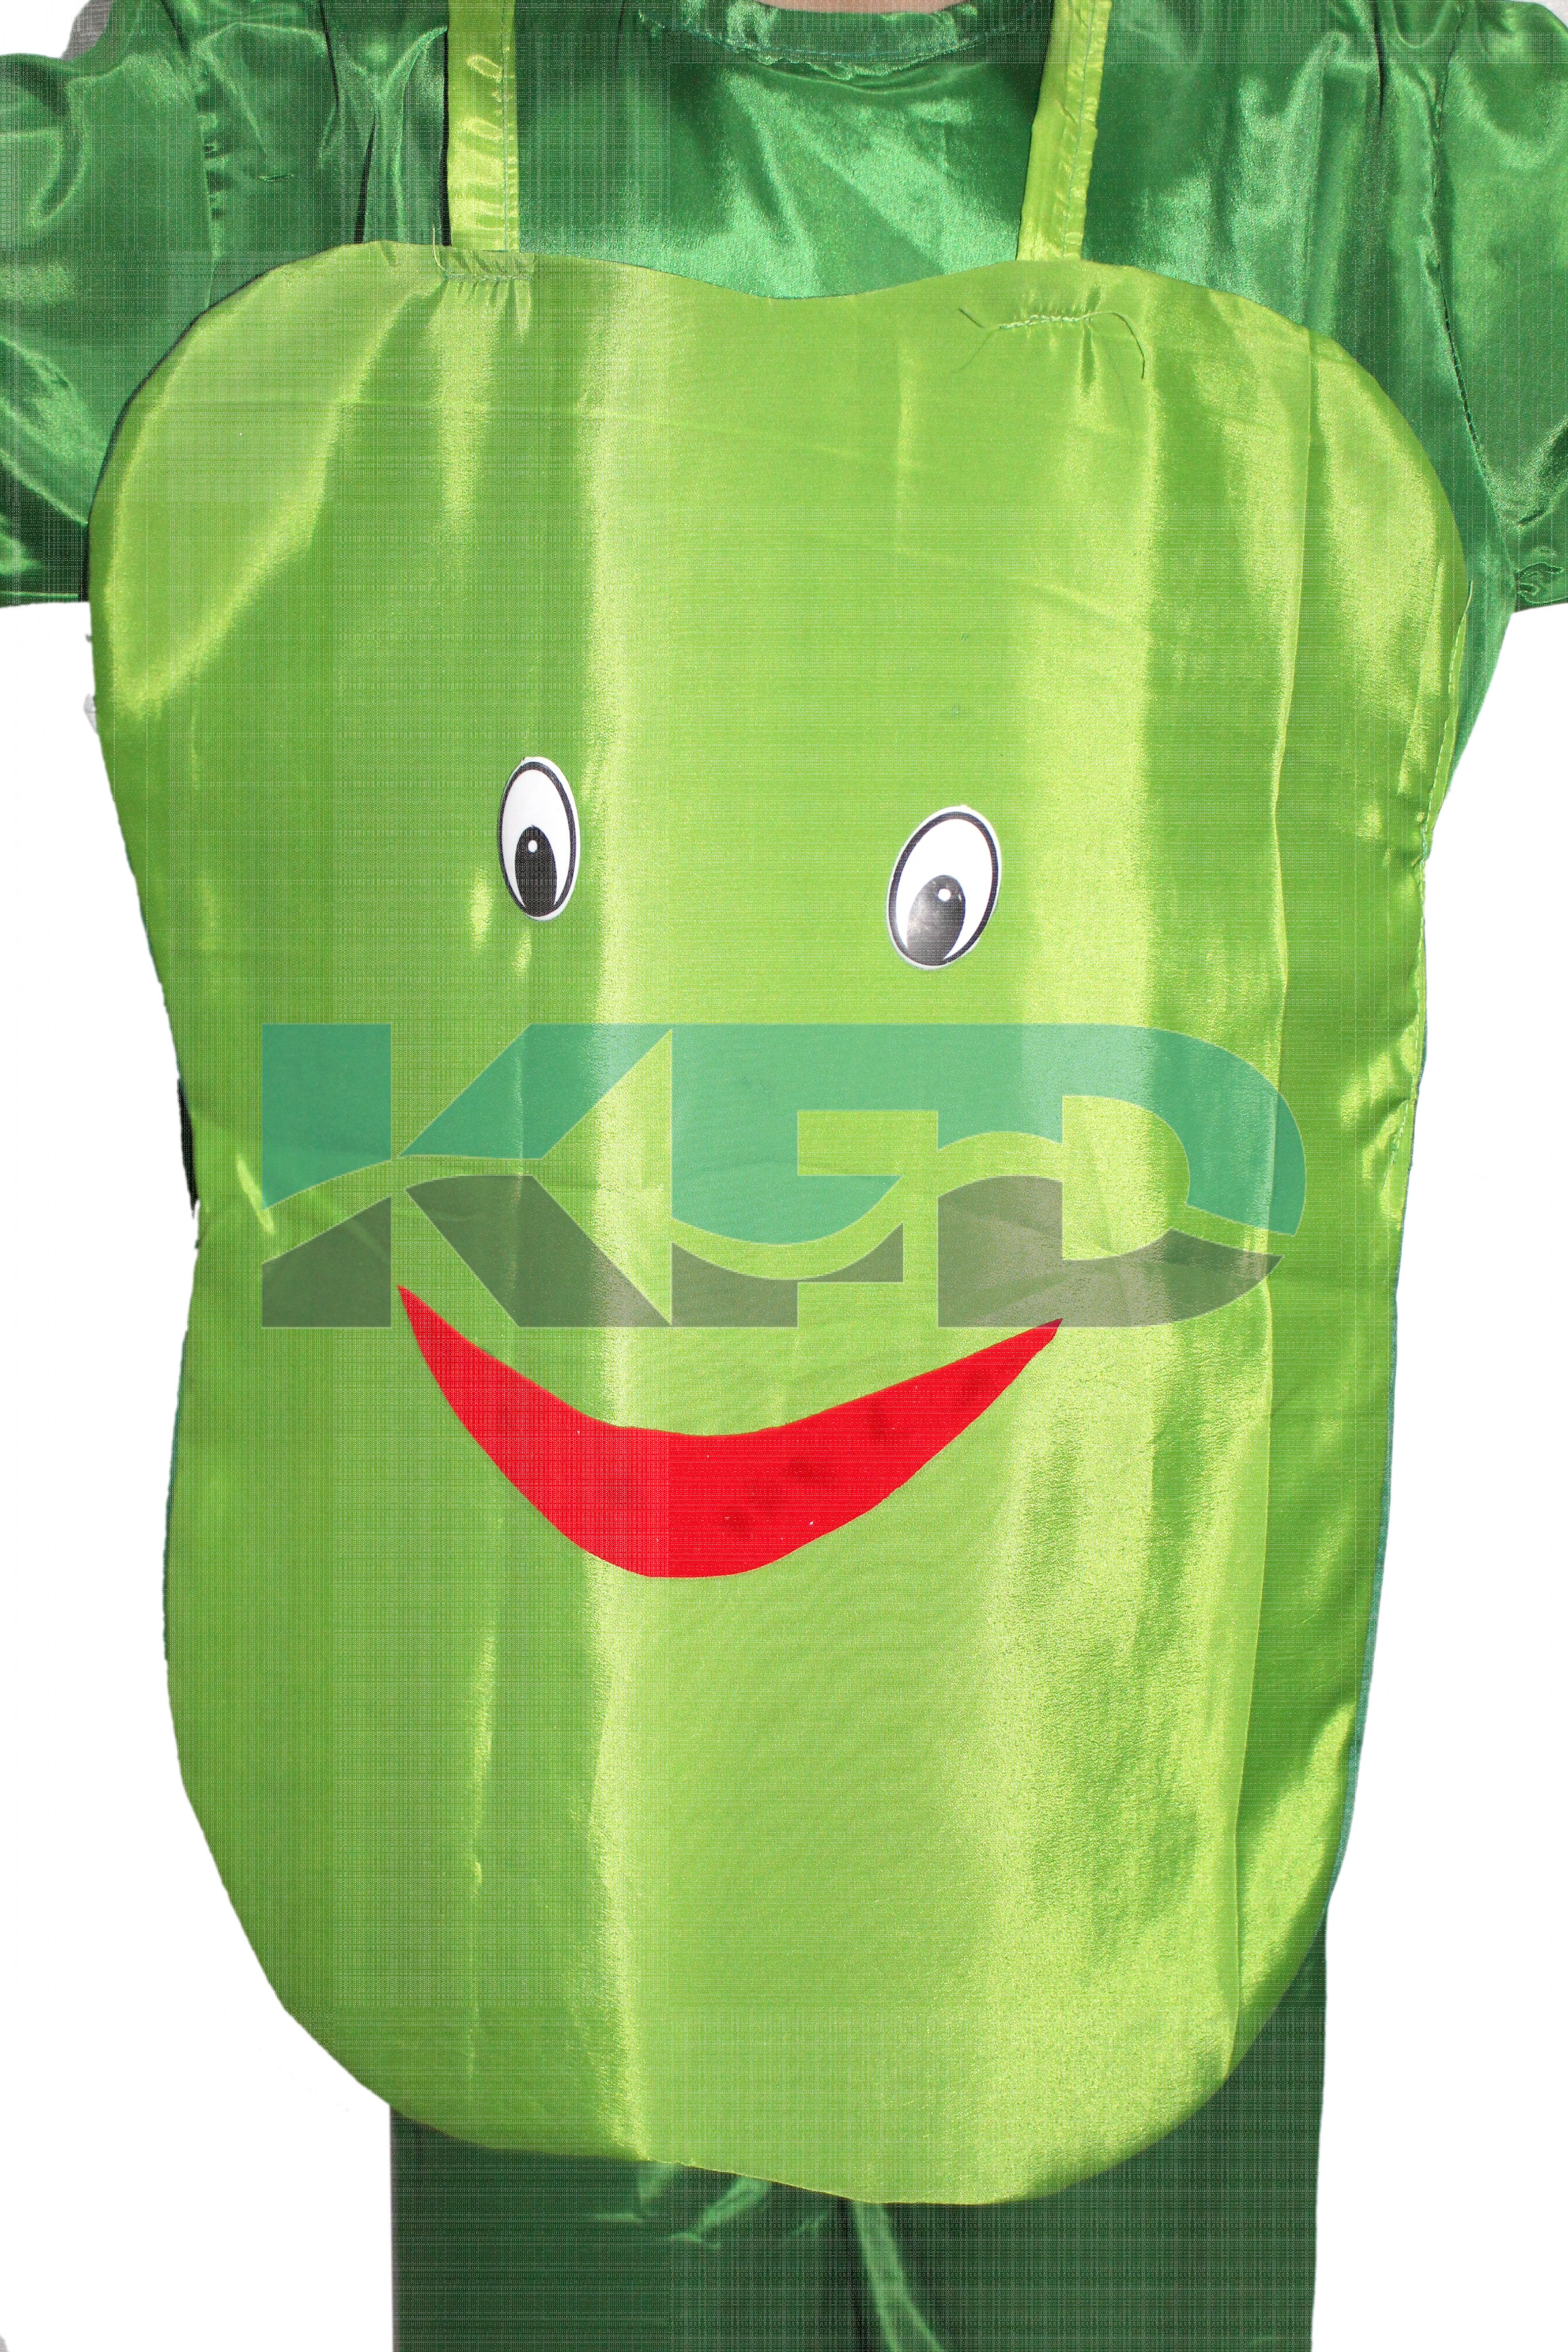 Capsicum Vegetables Costume only cutout with Cap for Annual function/Theme Party/Competition/Stage Shows/Birthday Party Dress